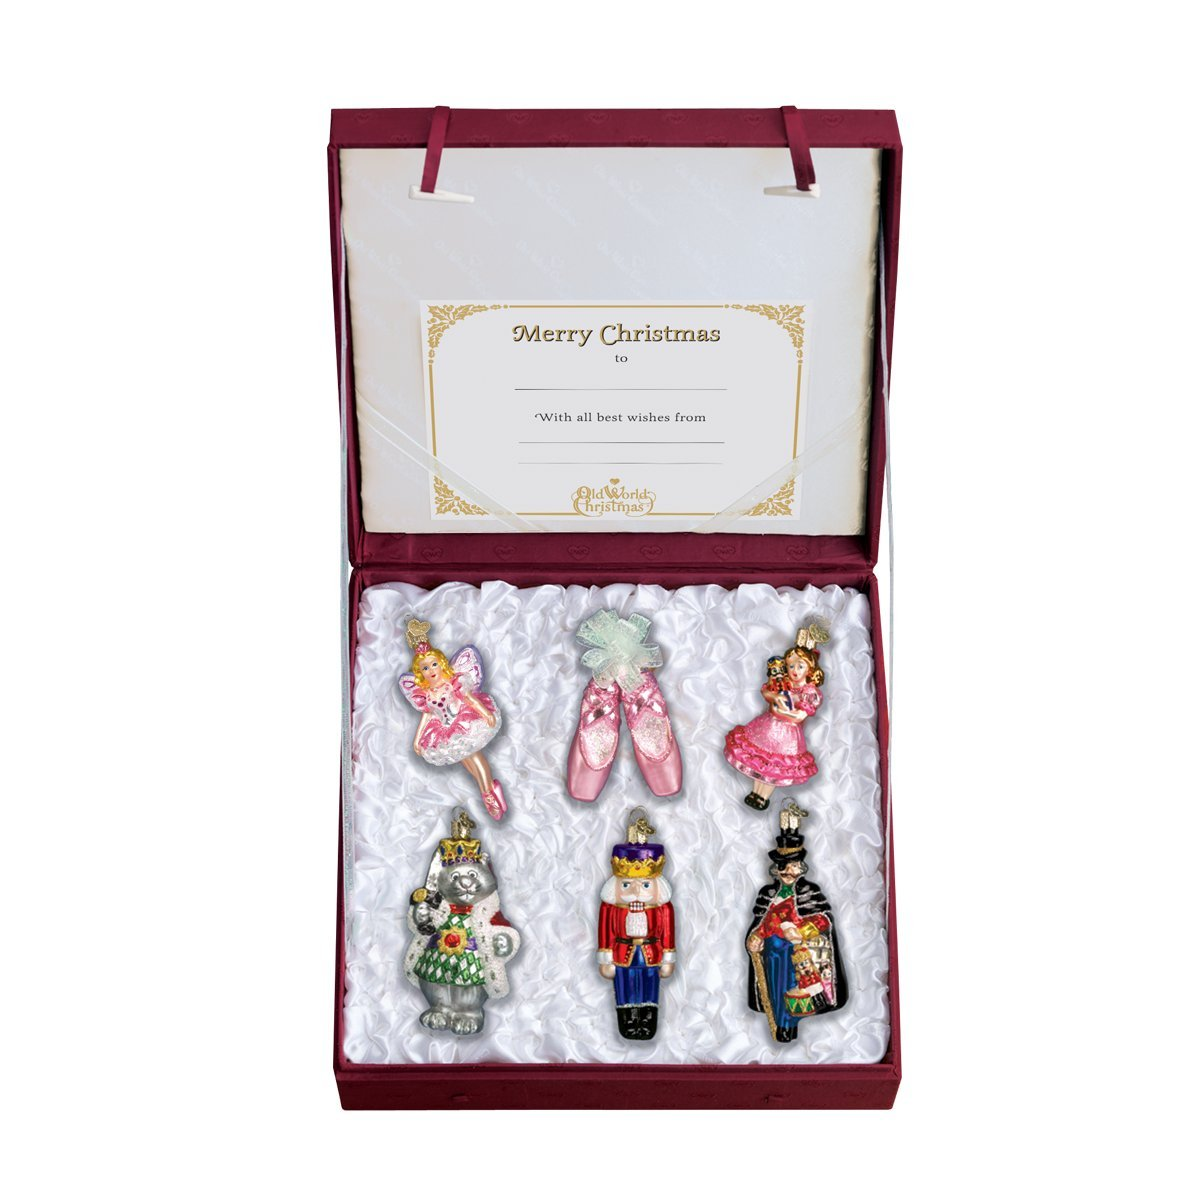 Old World Christmas Ornaments: Nutcracker Suite Collection Glass Blown Ornaments for Christmas Tree